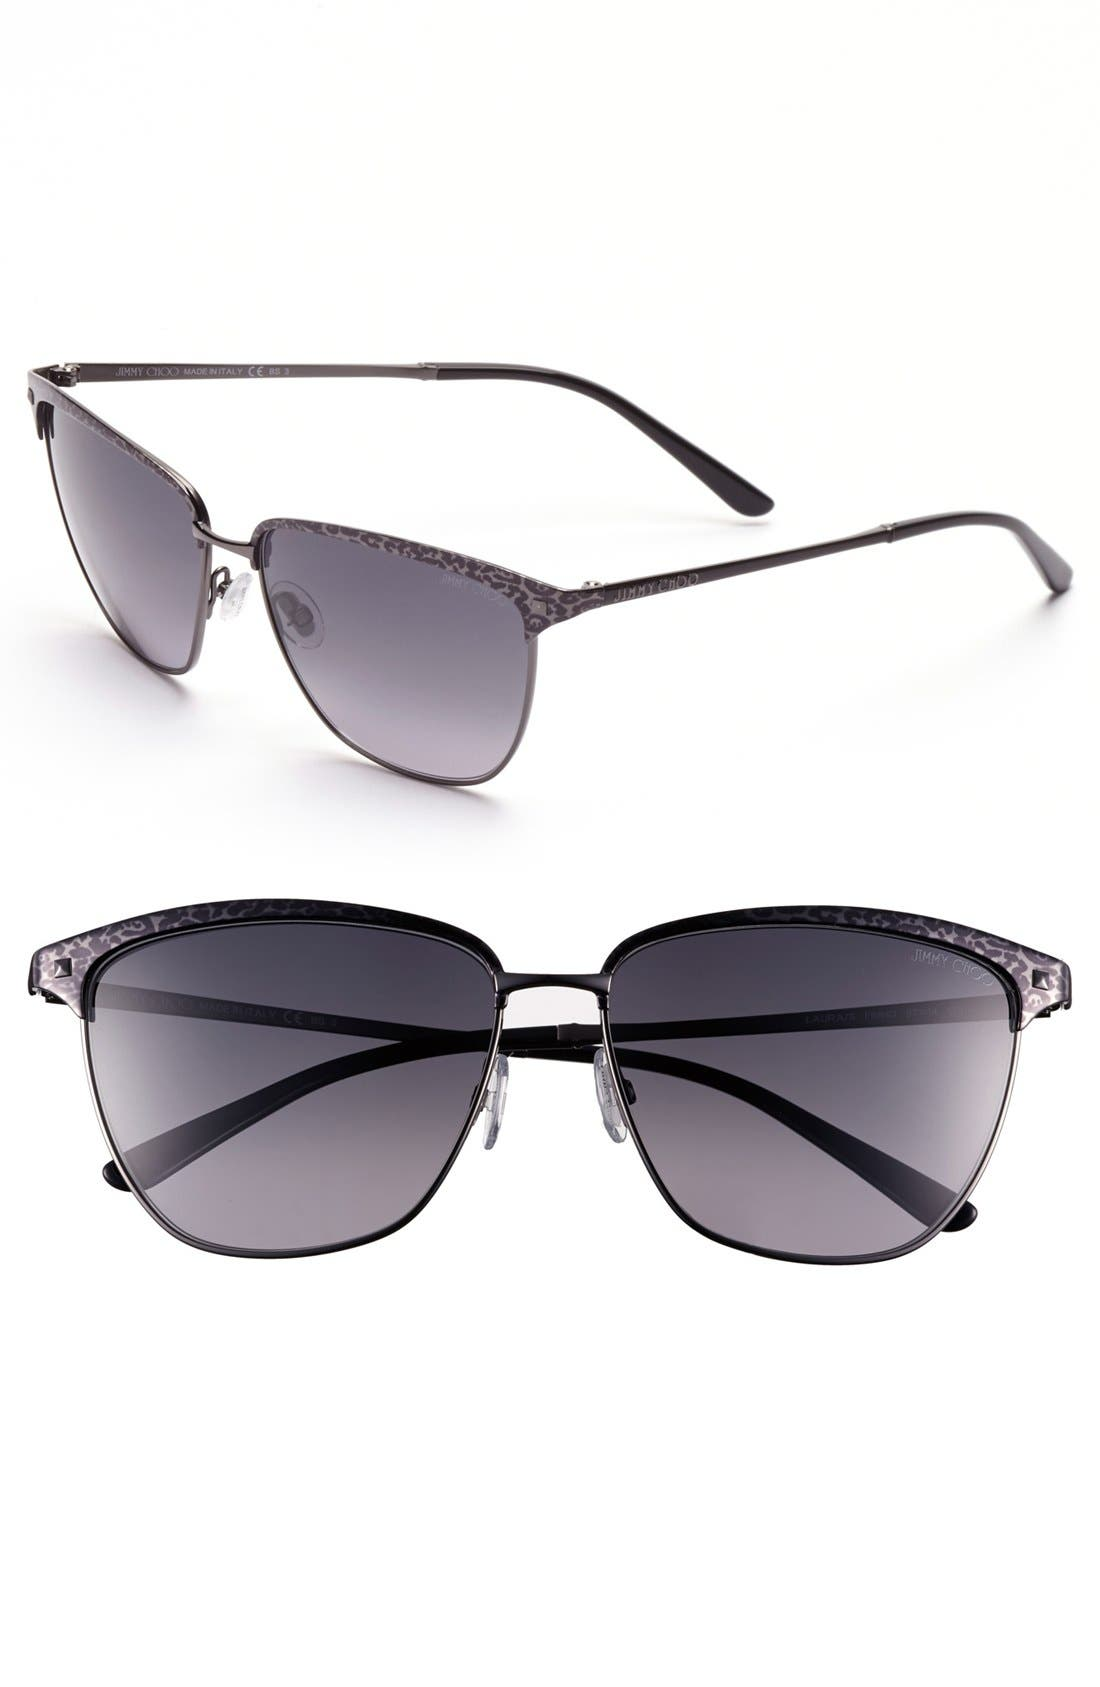 Main Image - Jimmy Choo 57mm Retro Sunglasses